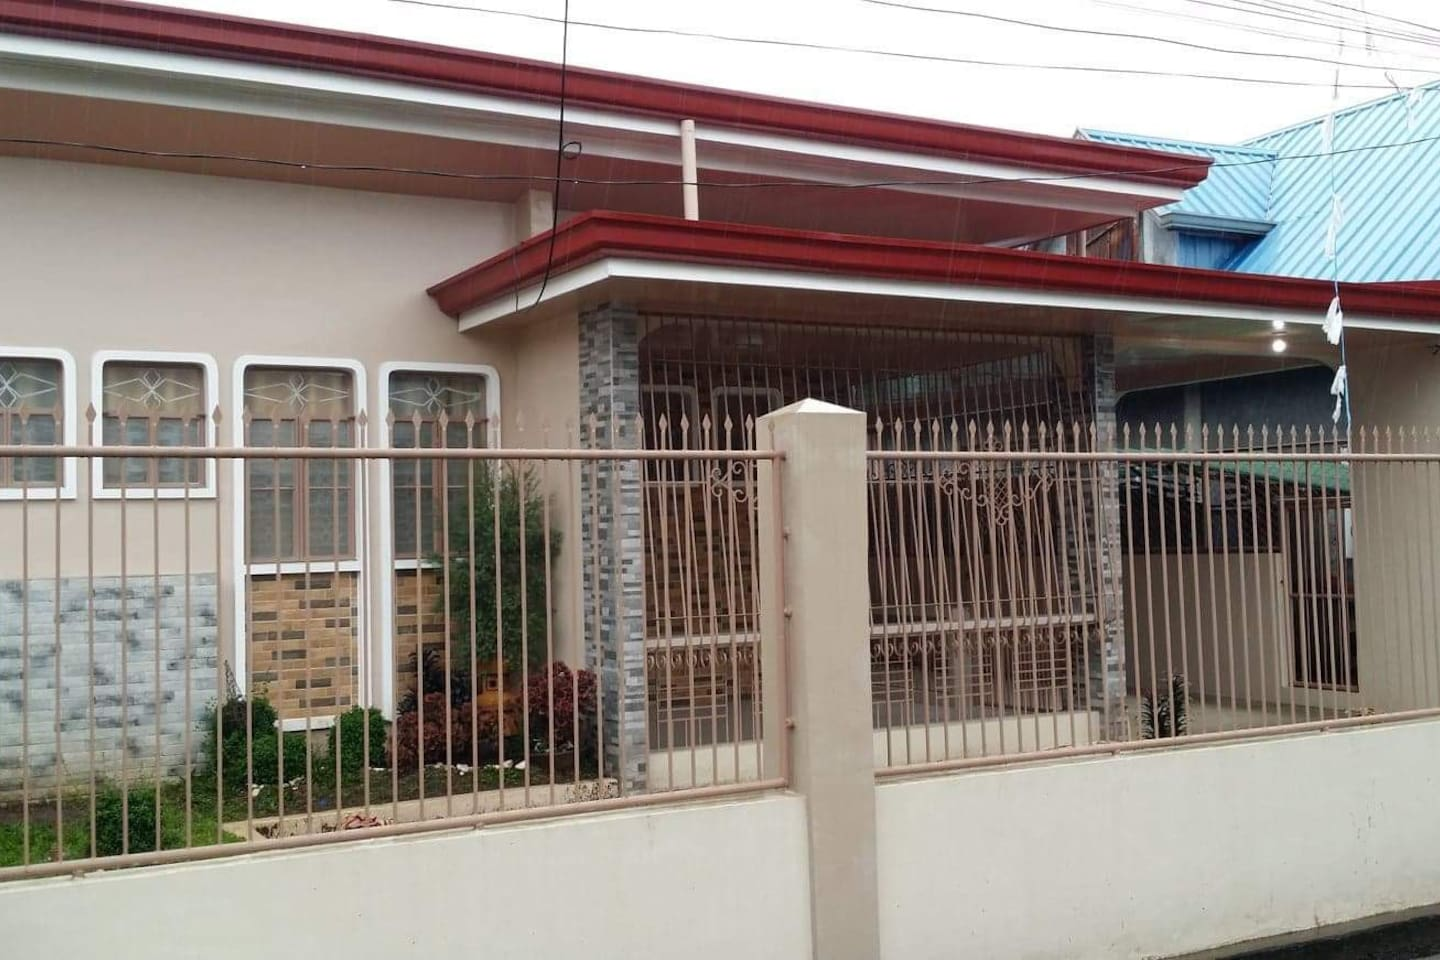 The property has private entrance, fenced and covered parking space. It is located in a barangay along main access road.